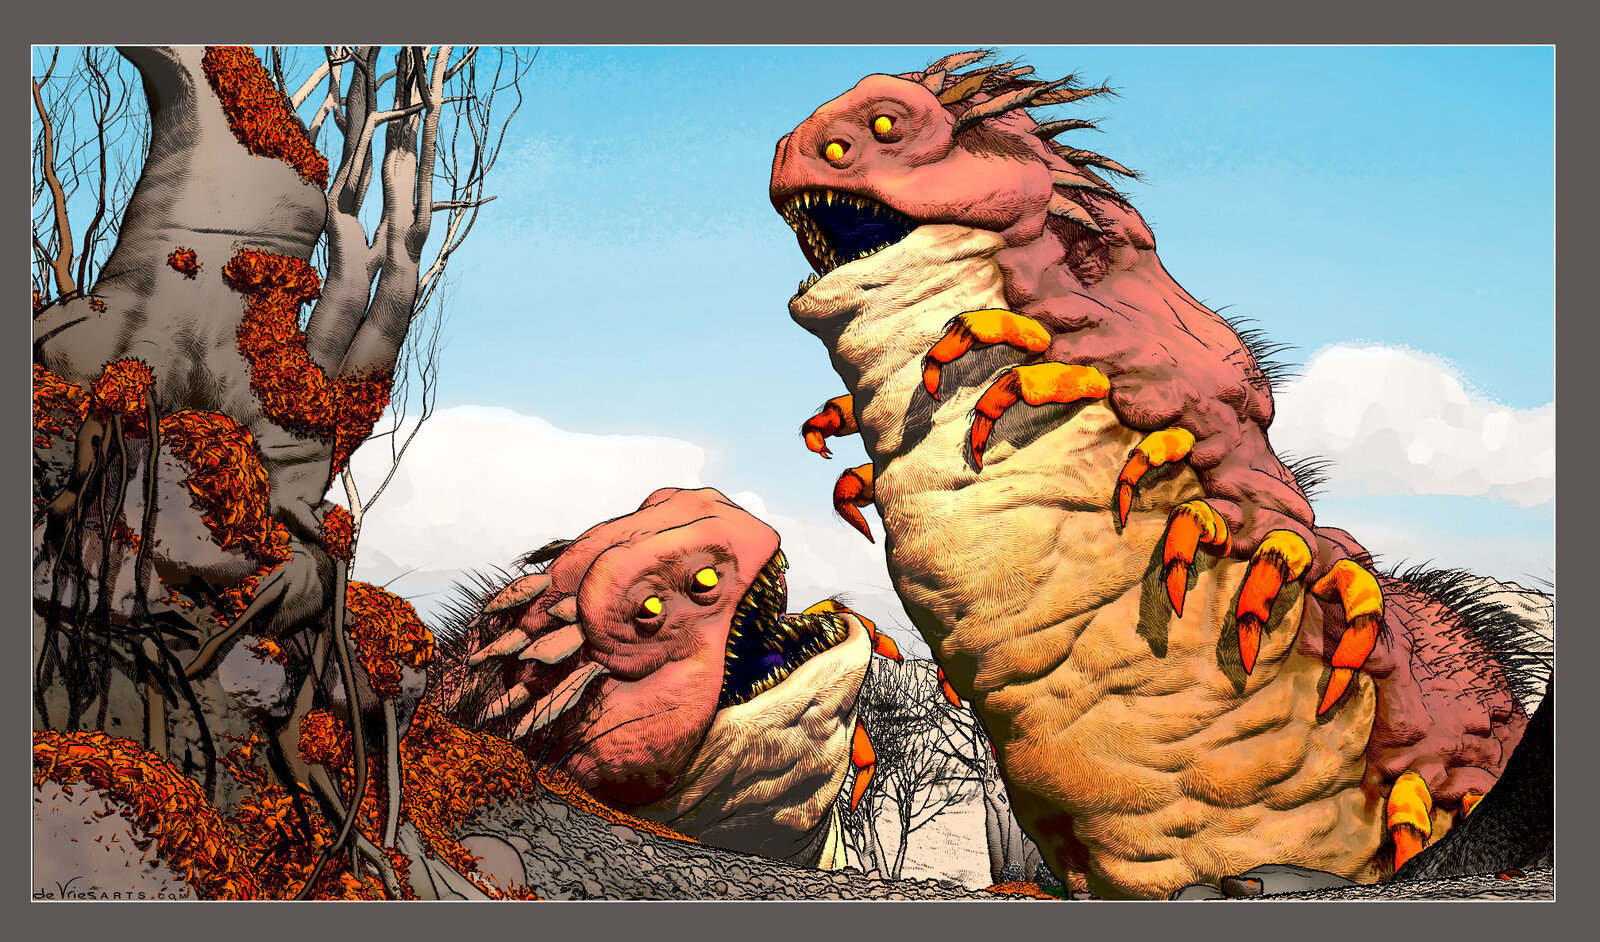 While working on this piece I considered adding a second creature. I decided against it, but do like this screengrab